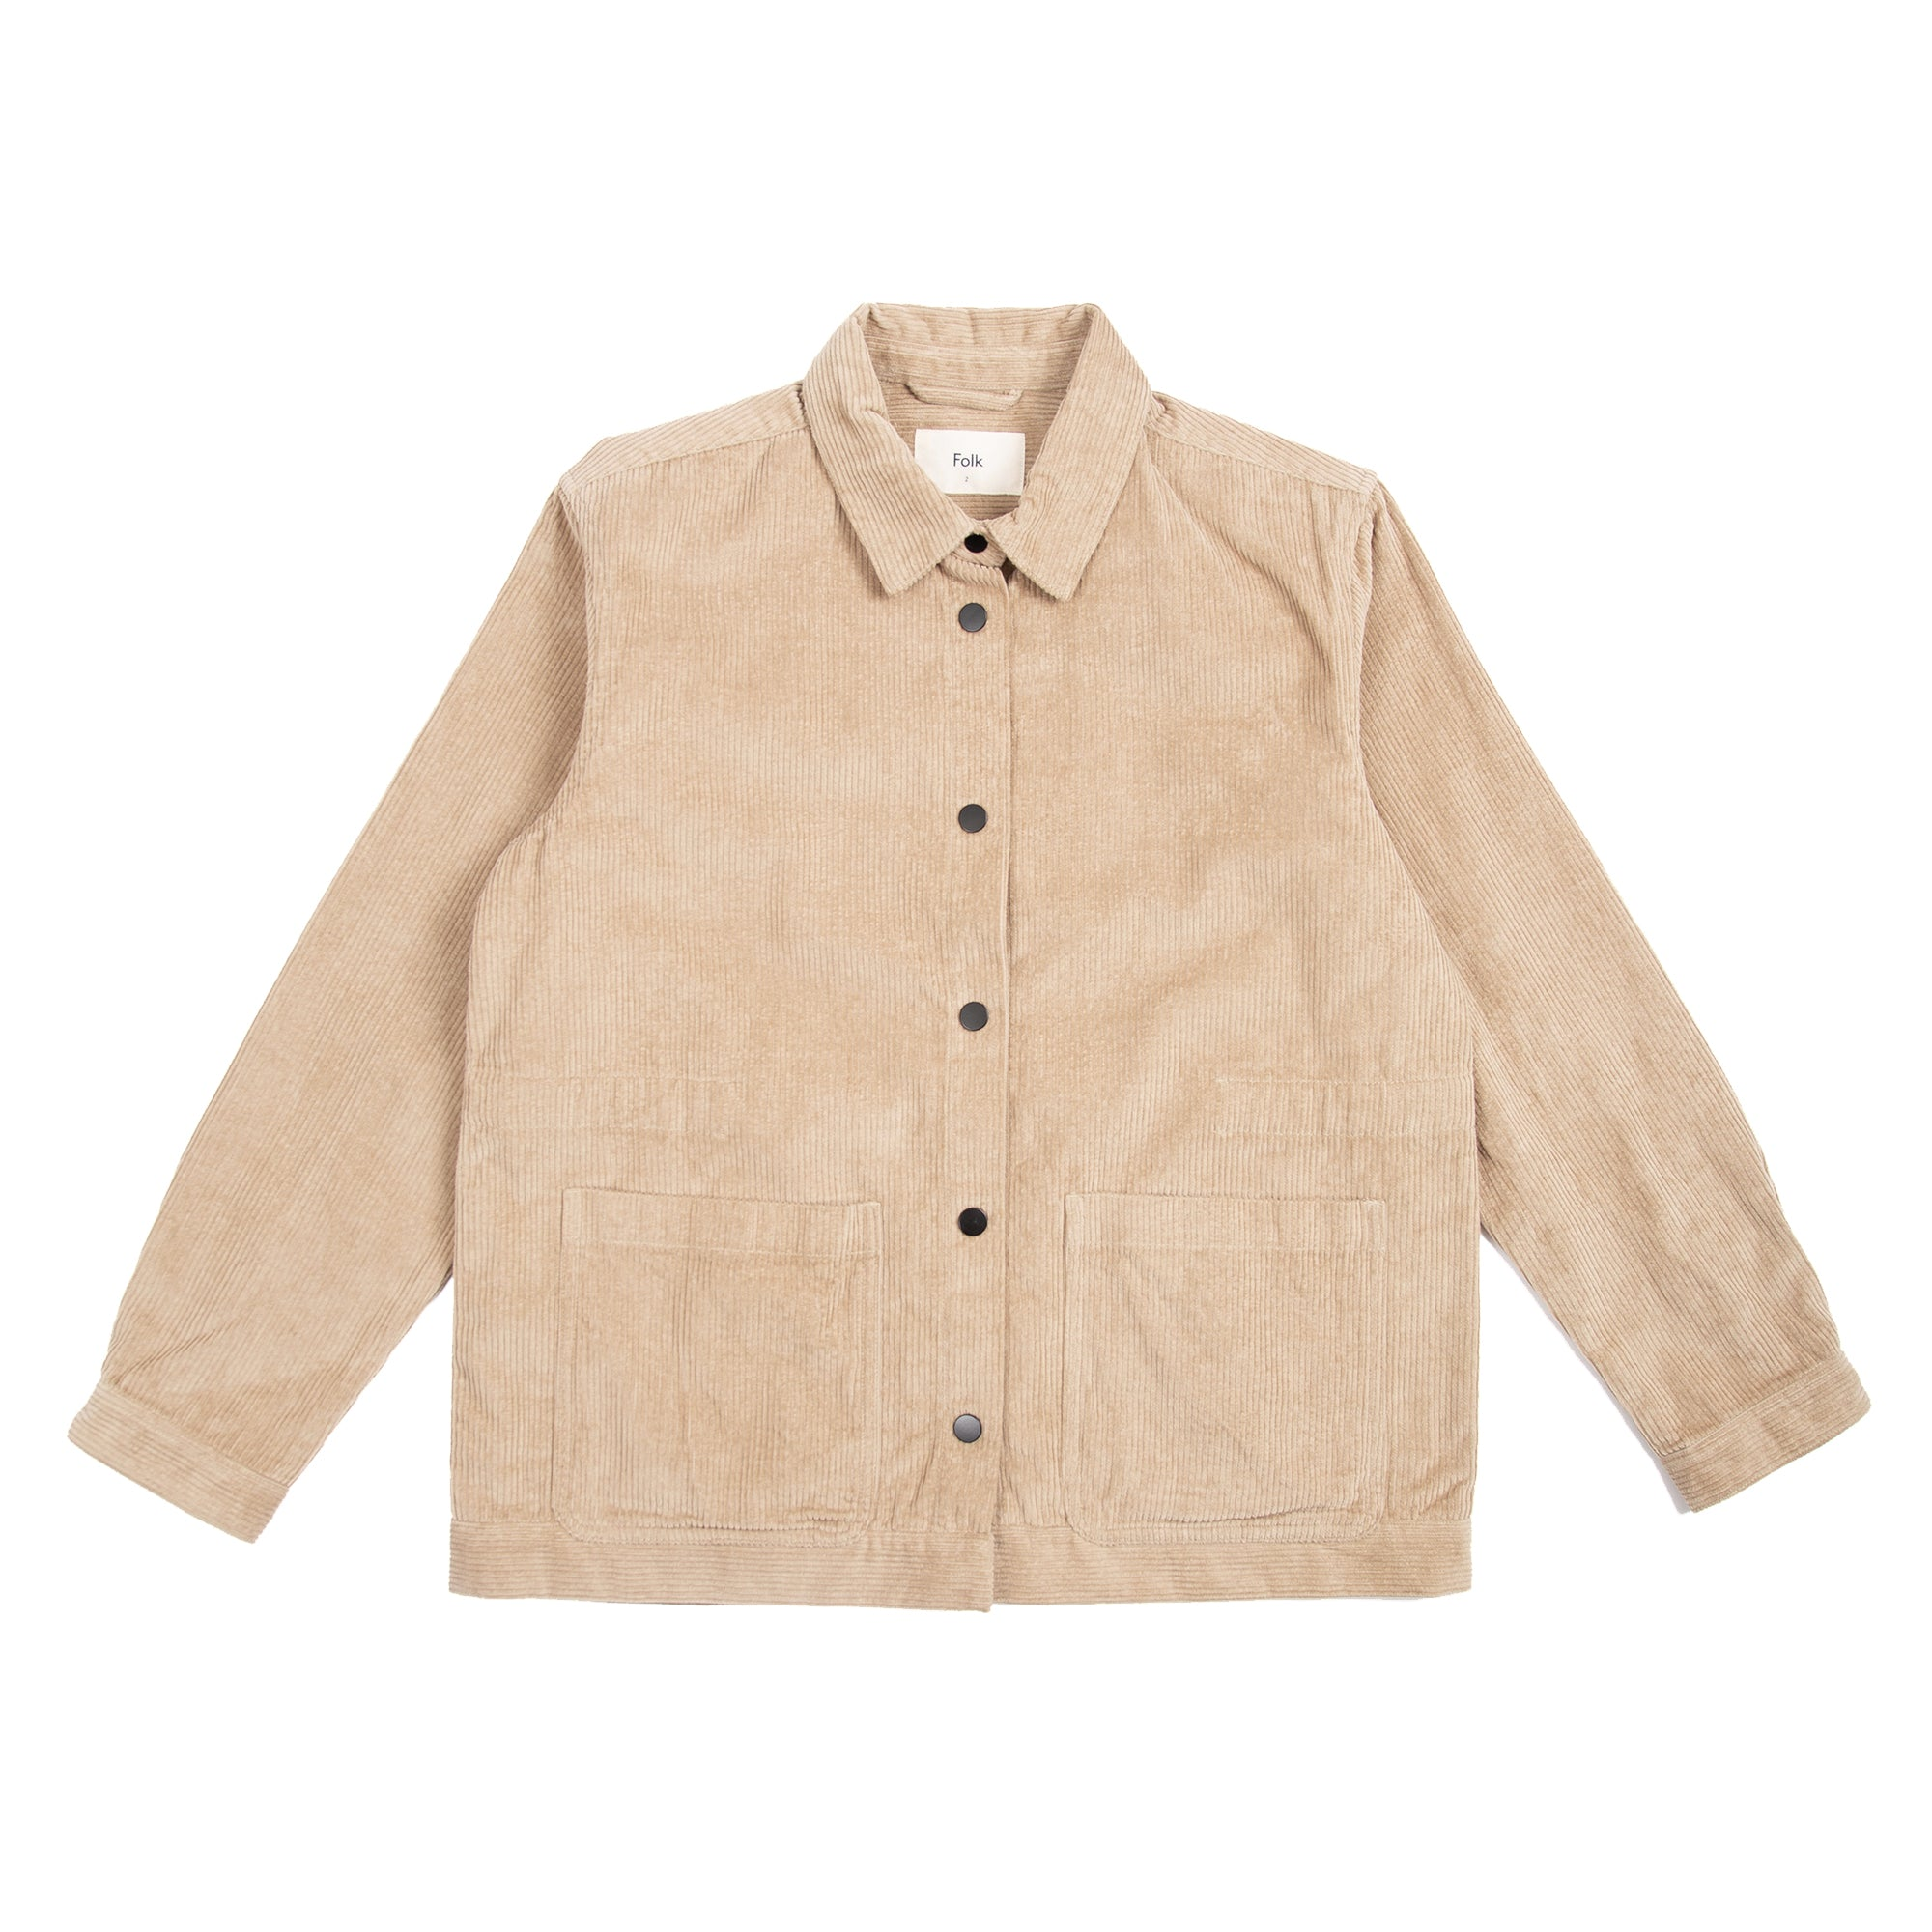 Painters Jacket - Stone Cord